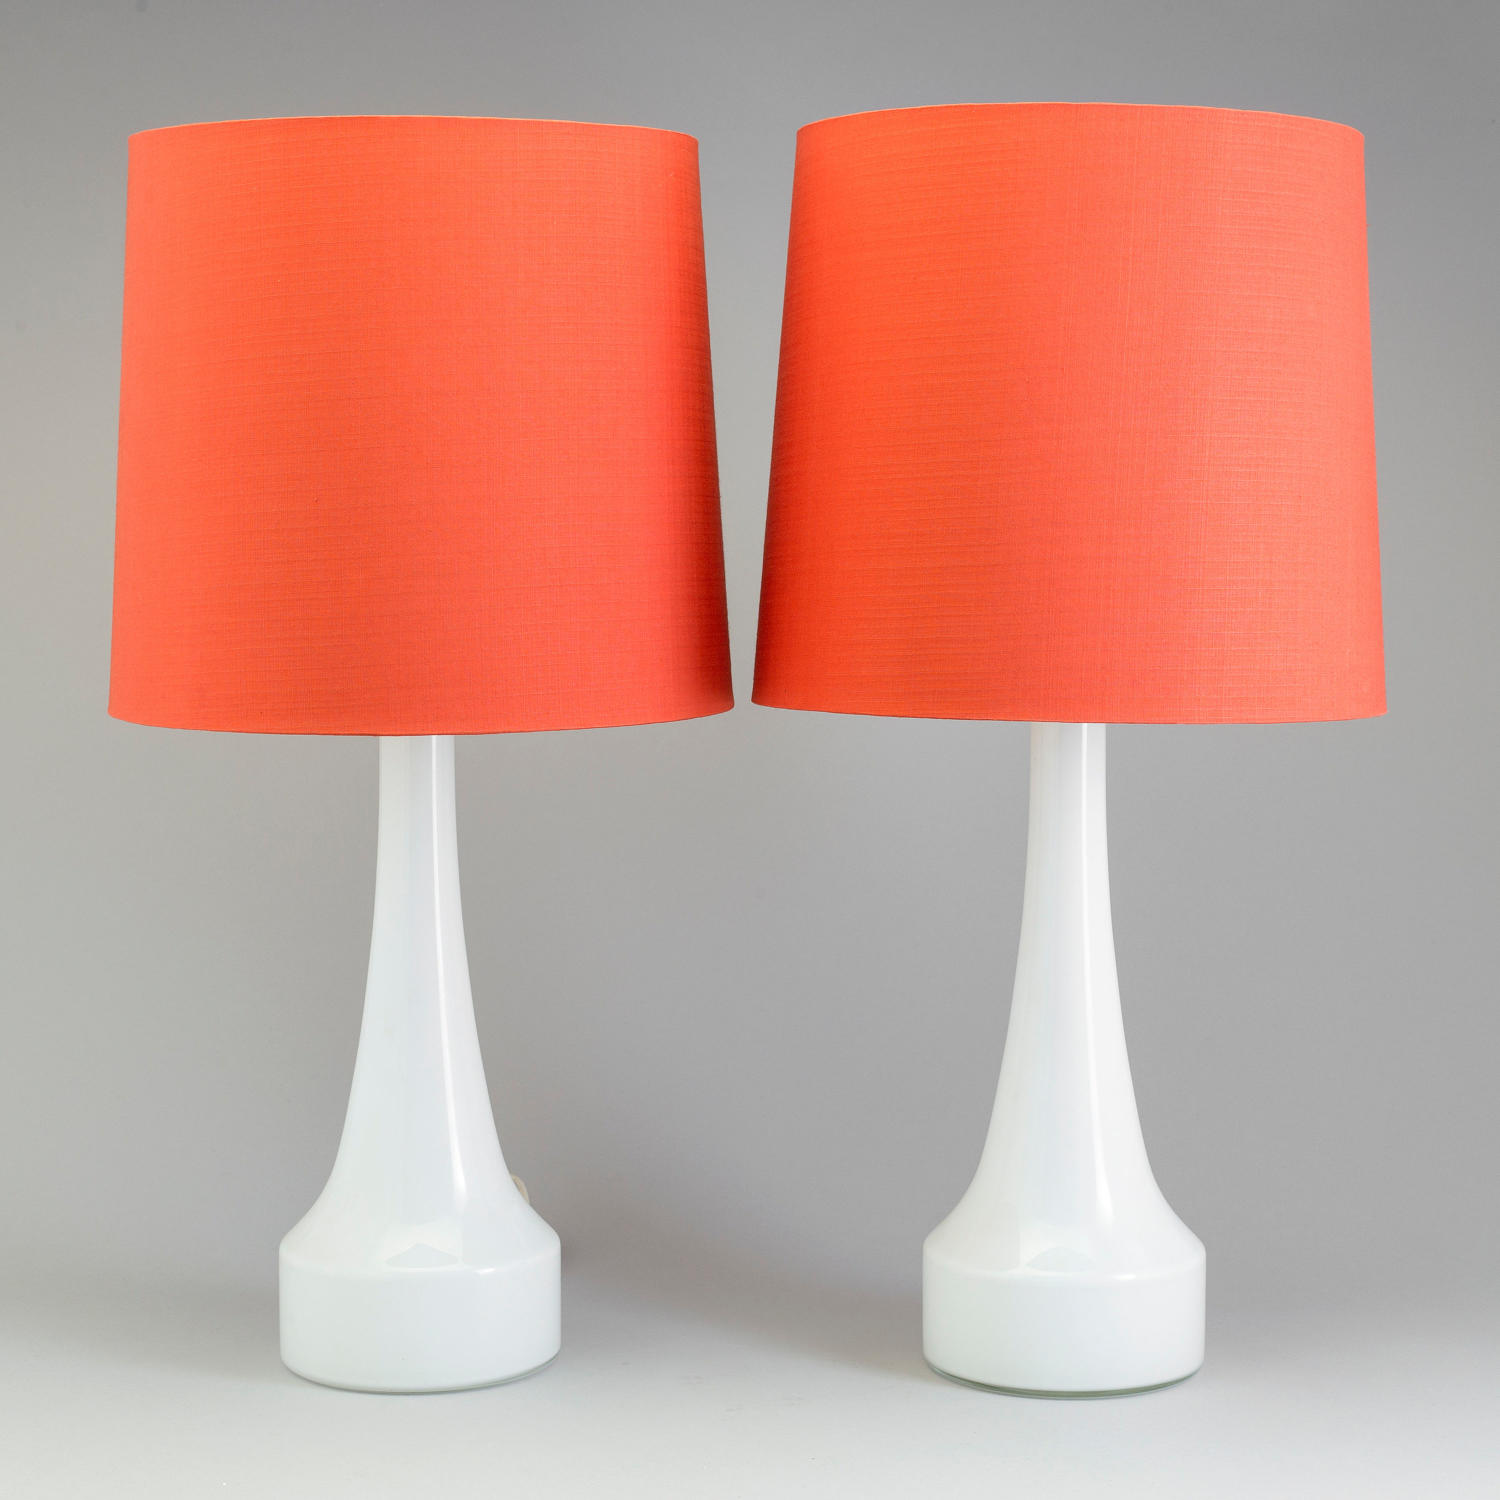 A pair of Swedish glass table lamps by Bergboms